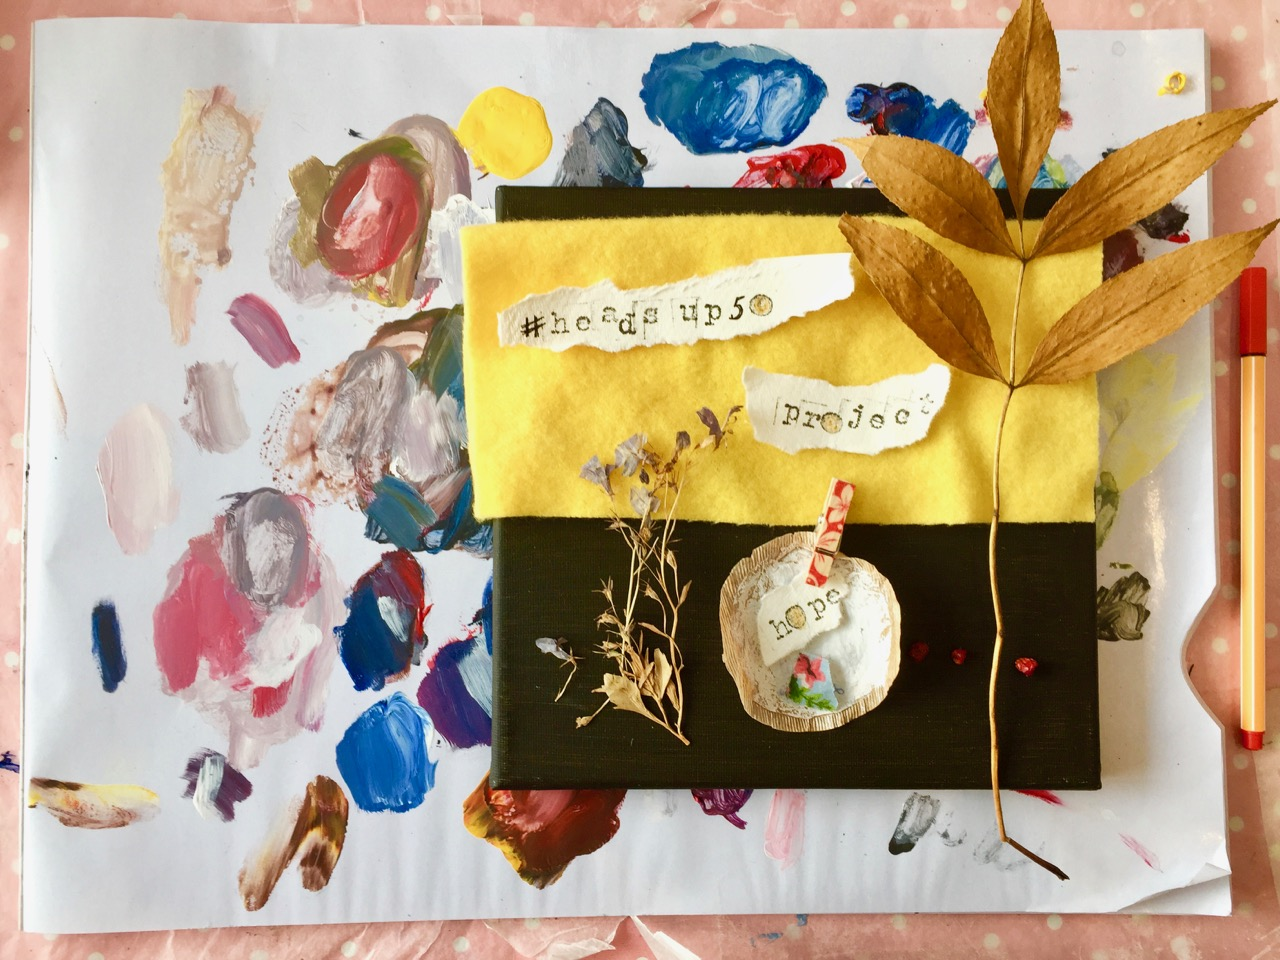 Headsup Mixed Media Collage Exploring Mental Health Wellbeing Using Art Jane Hinchliffe Squarespace Website Design Uk